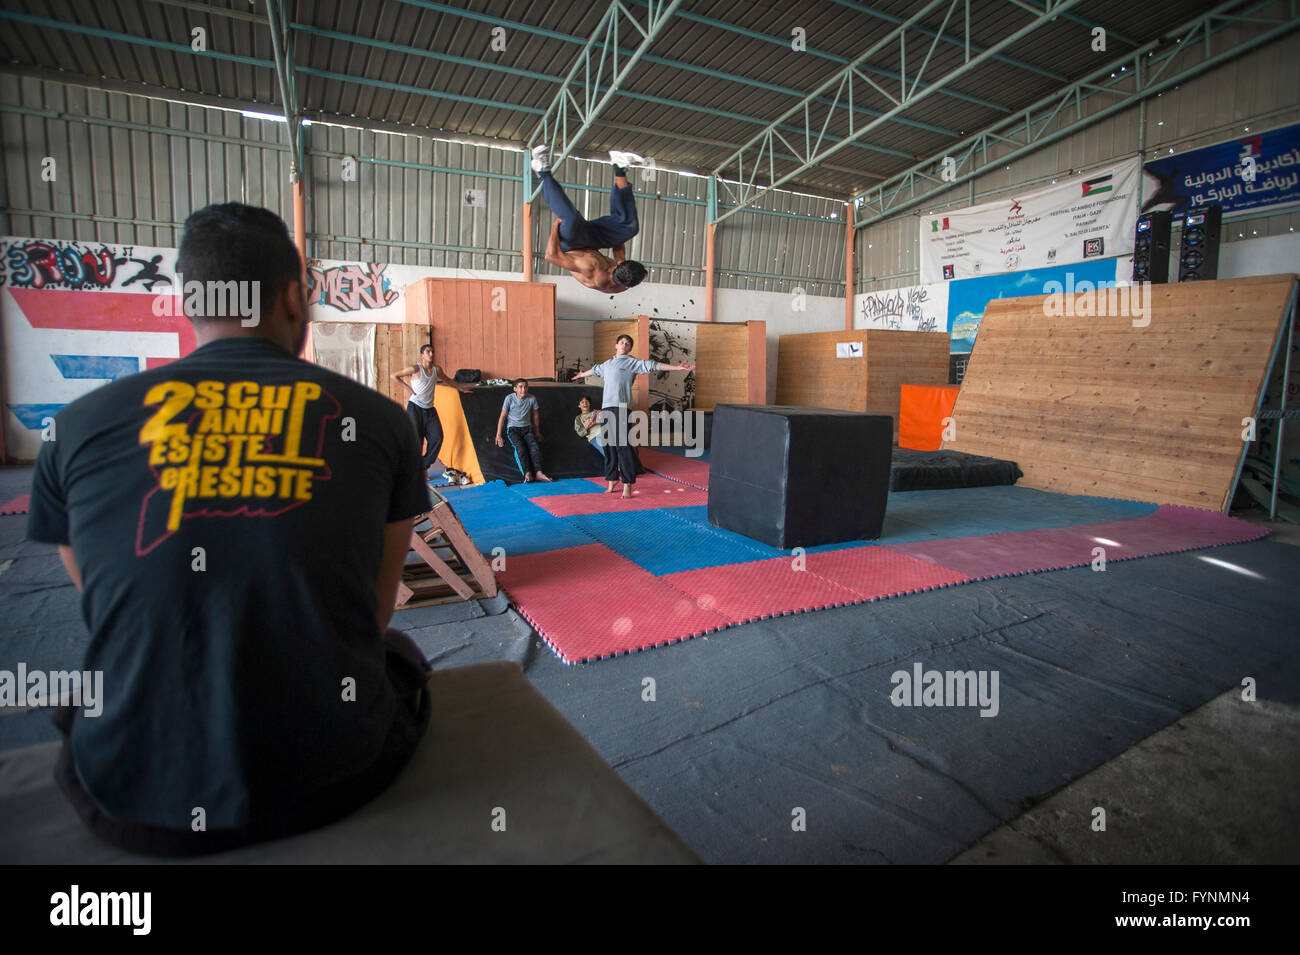 '3 Run Gaza' in training at their base in Beit hanoun, Gaza Strip. - Stock Image